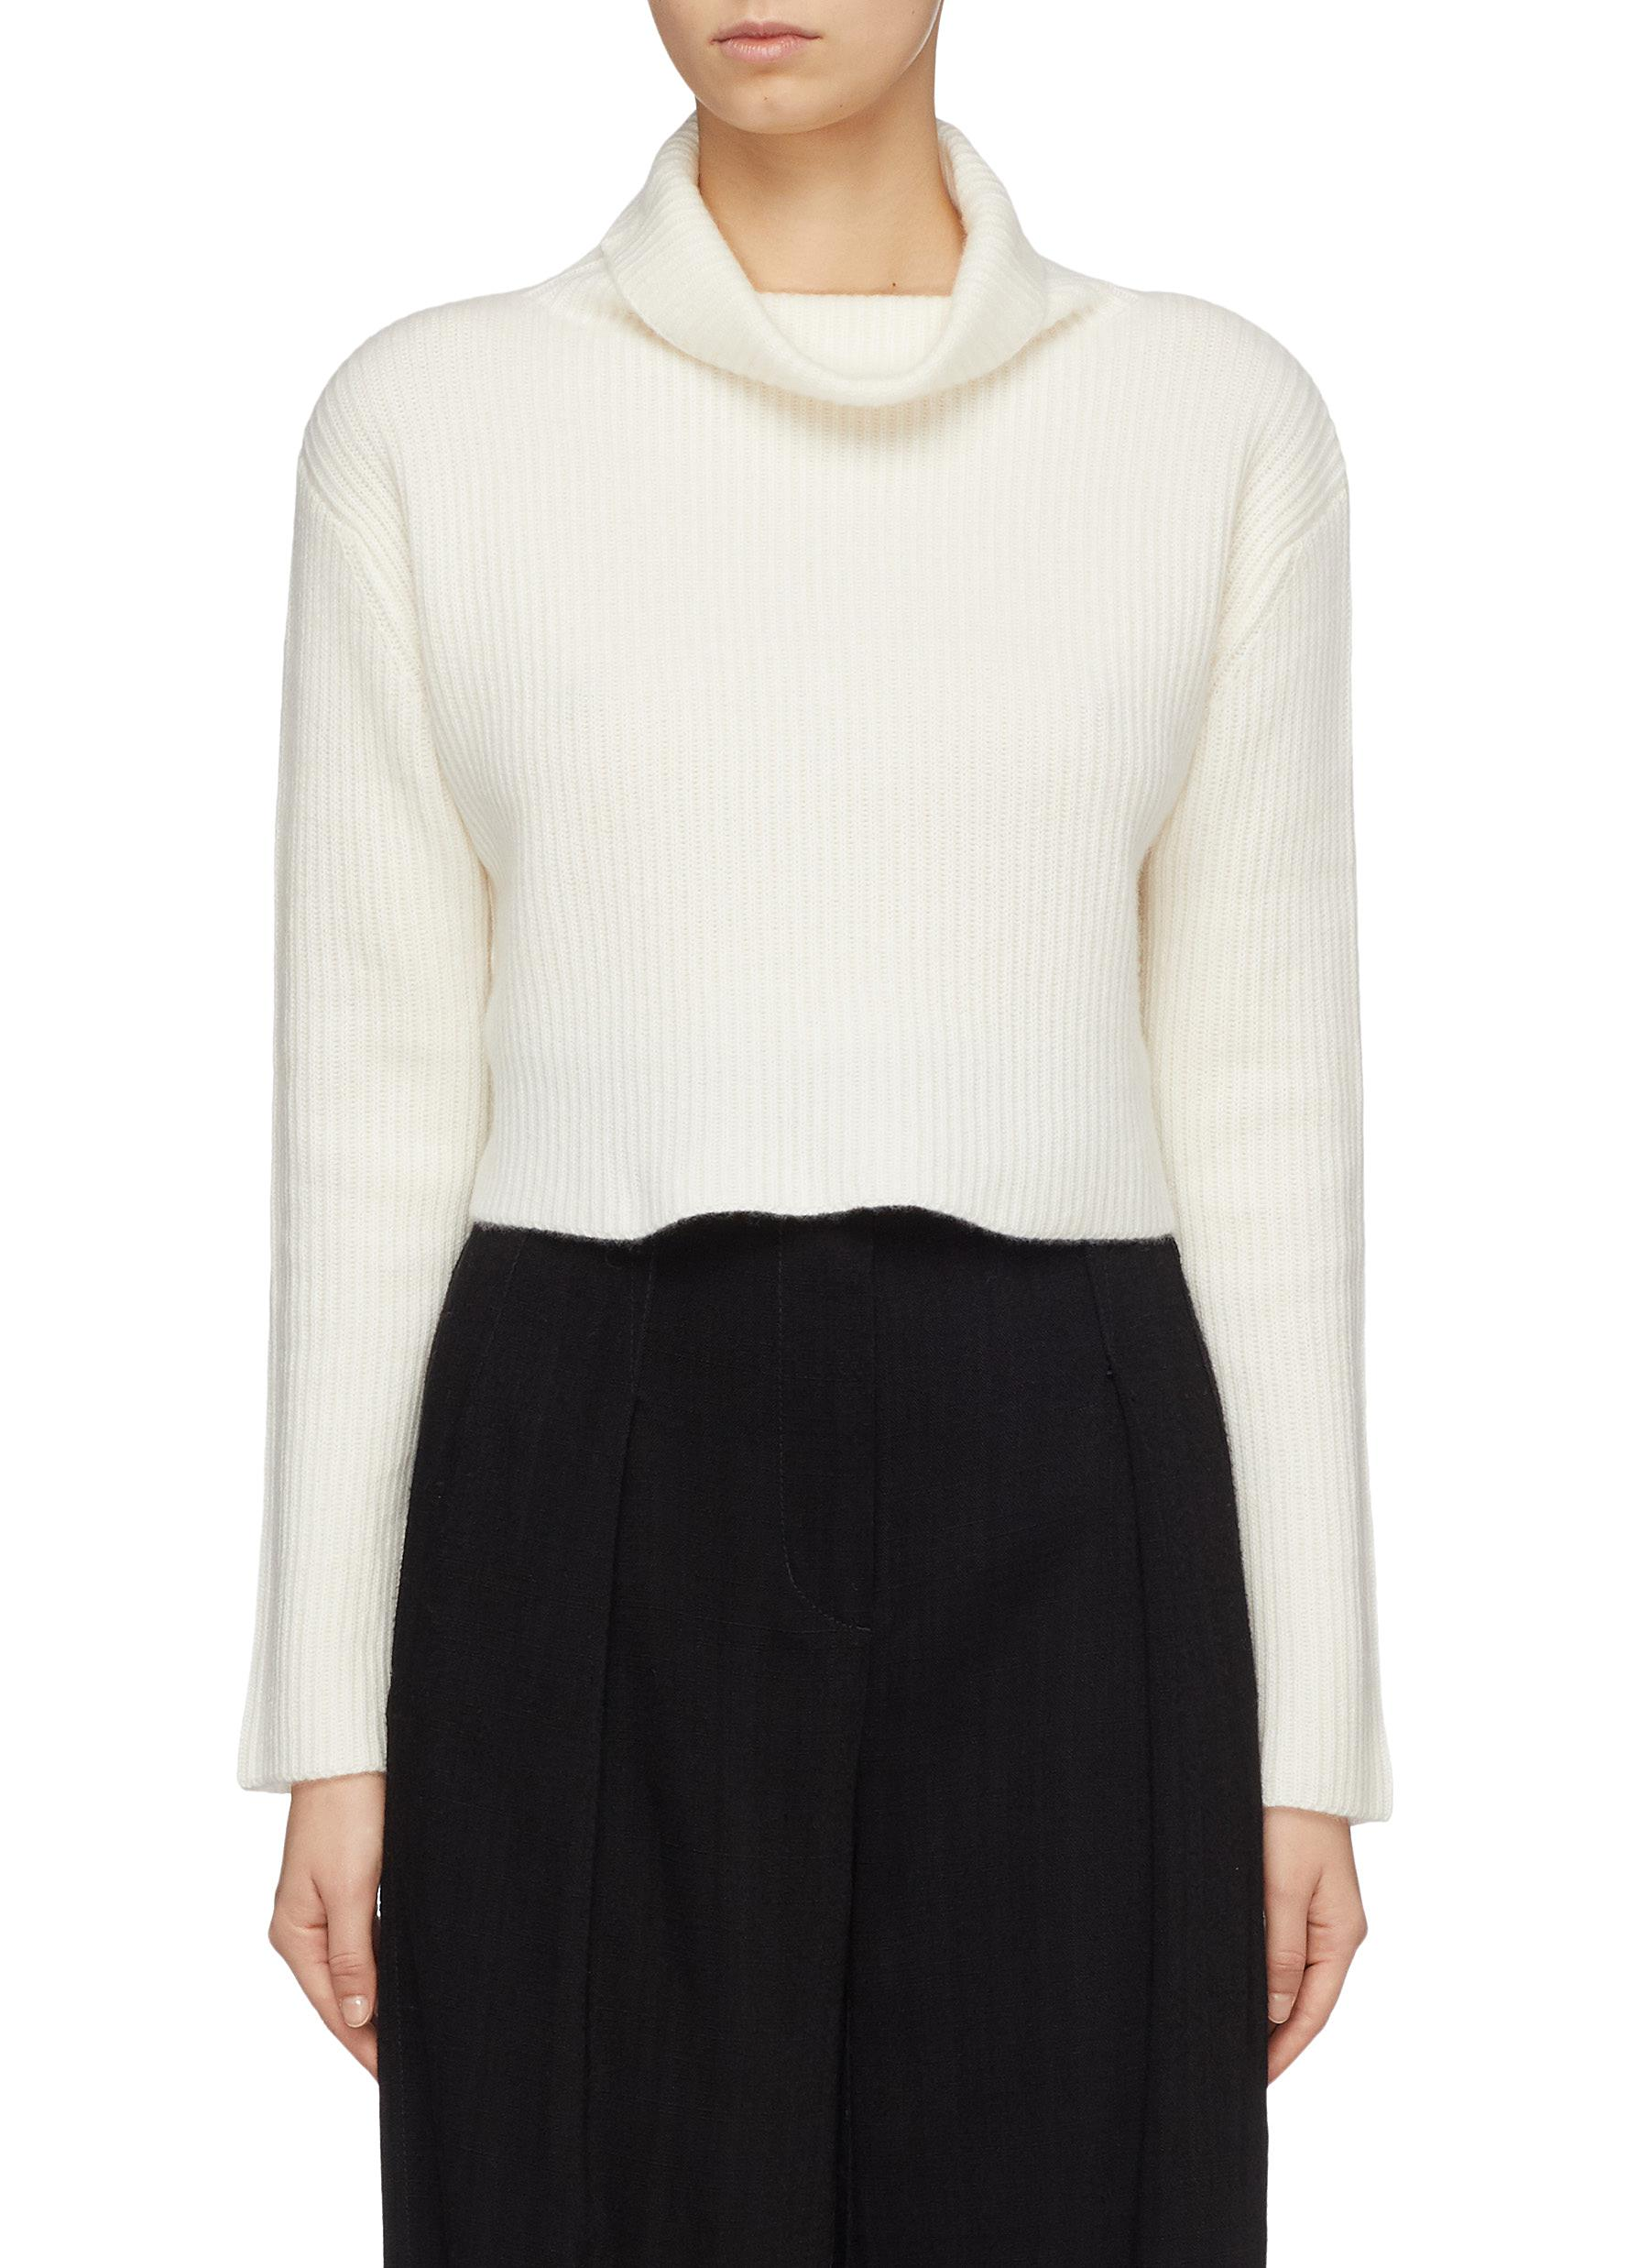 Cashmere rib knit cropped cowl neck sweater by Crush Collection